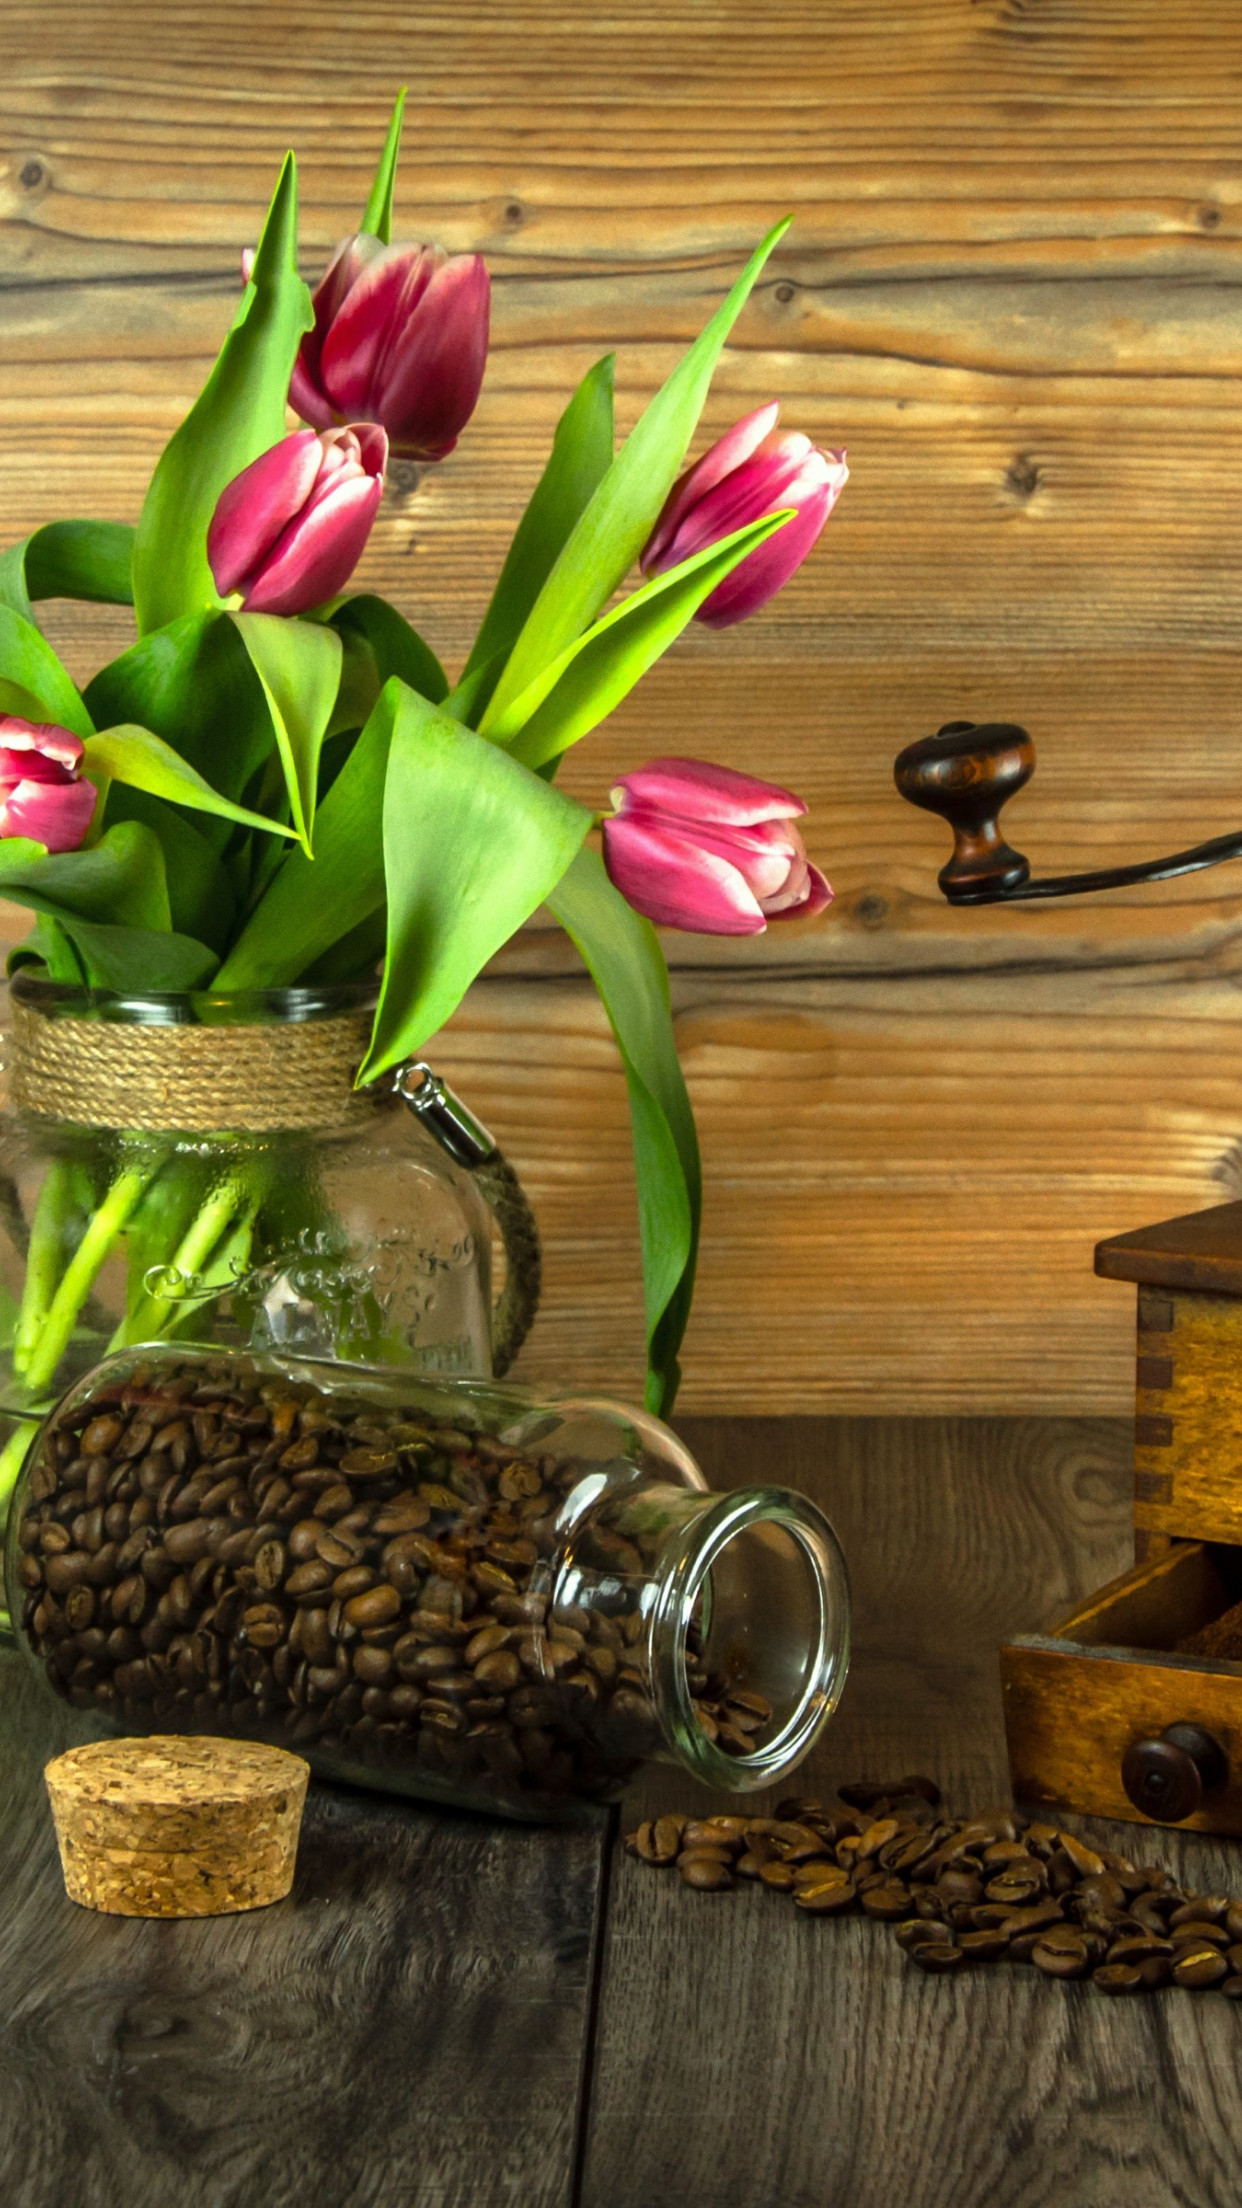 Red tulips and coffee grains | 1242x2208 wallpaper